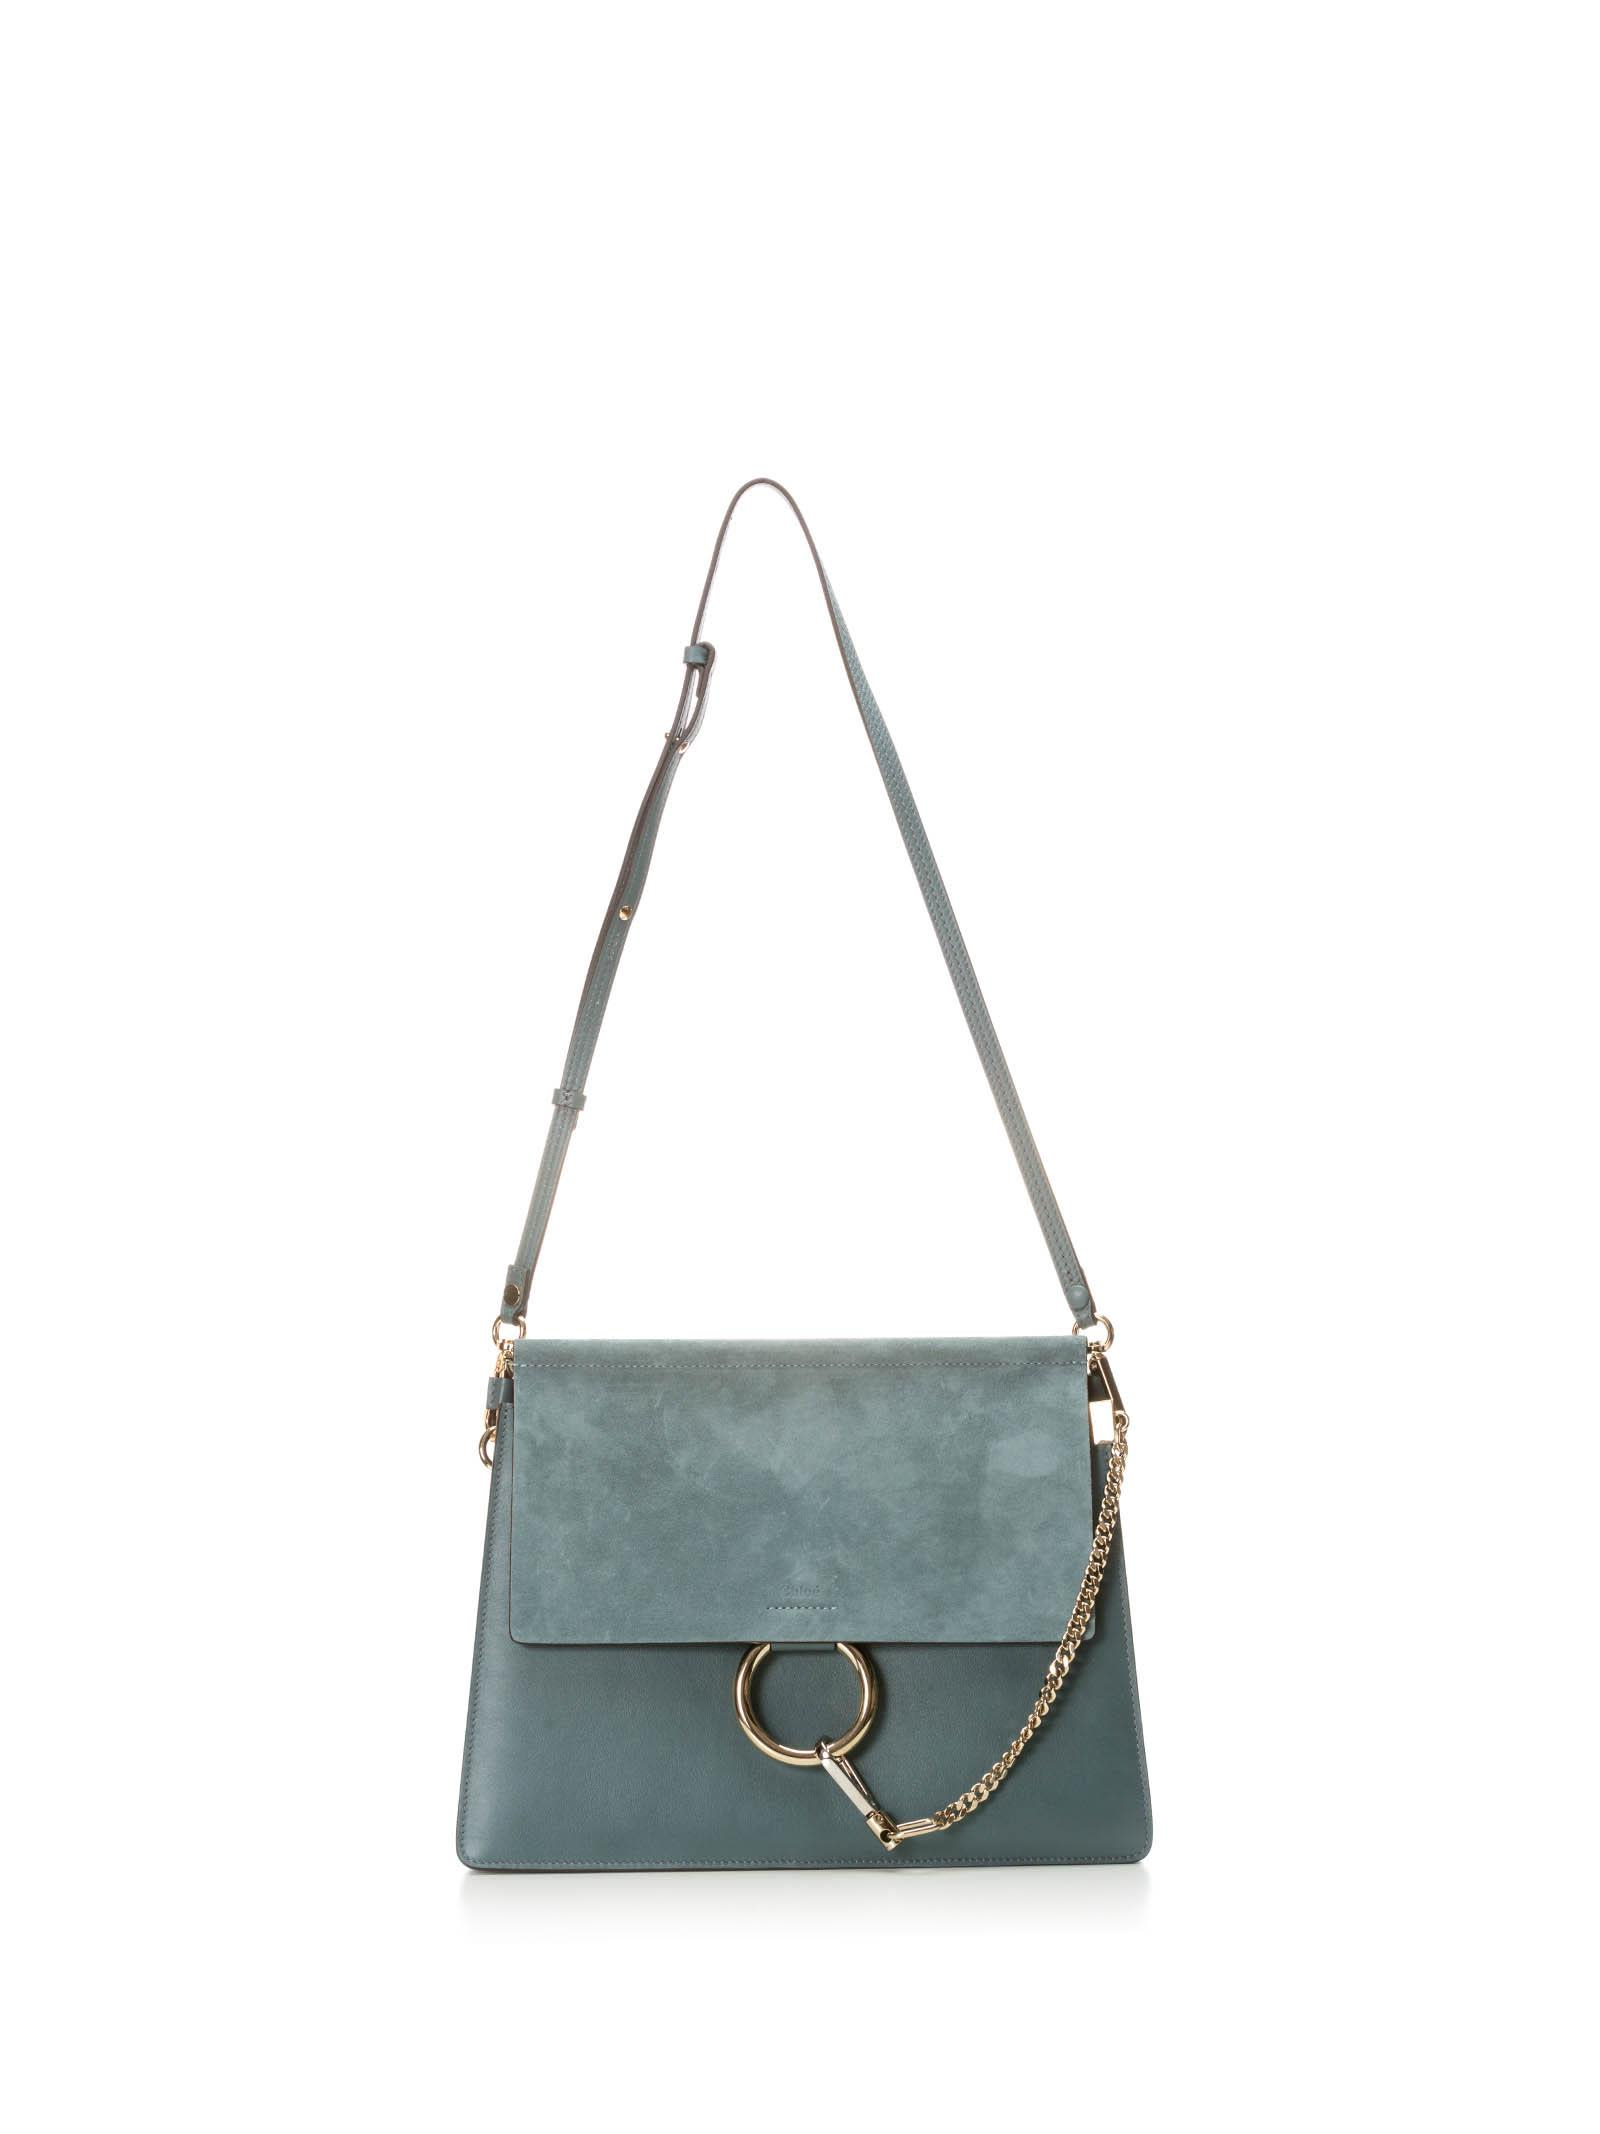 CHLOÉ CHLOE LIGHT BLUE FAYE SHOULDER BAG